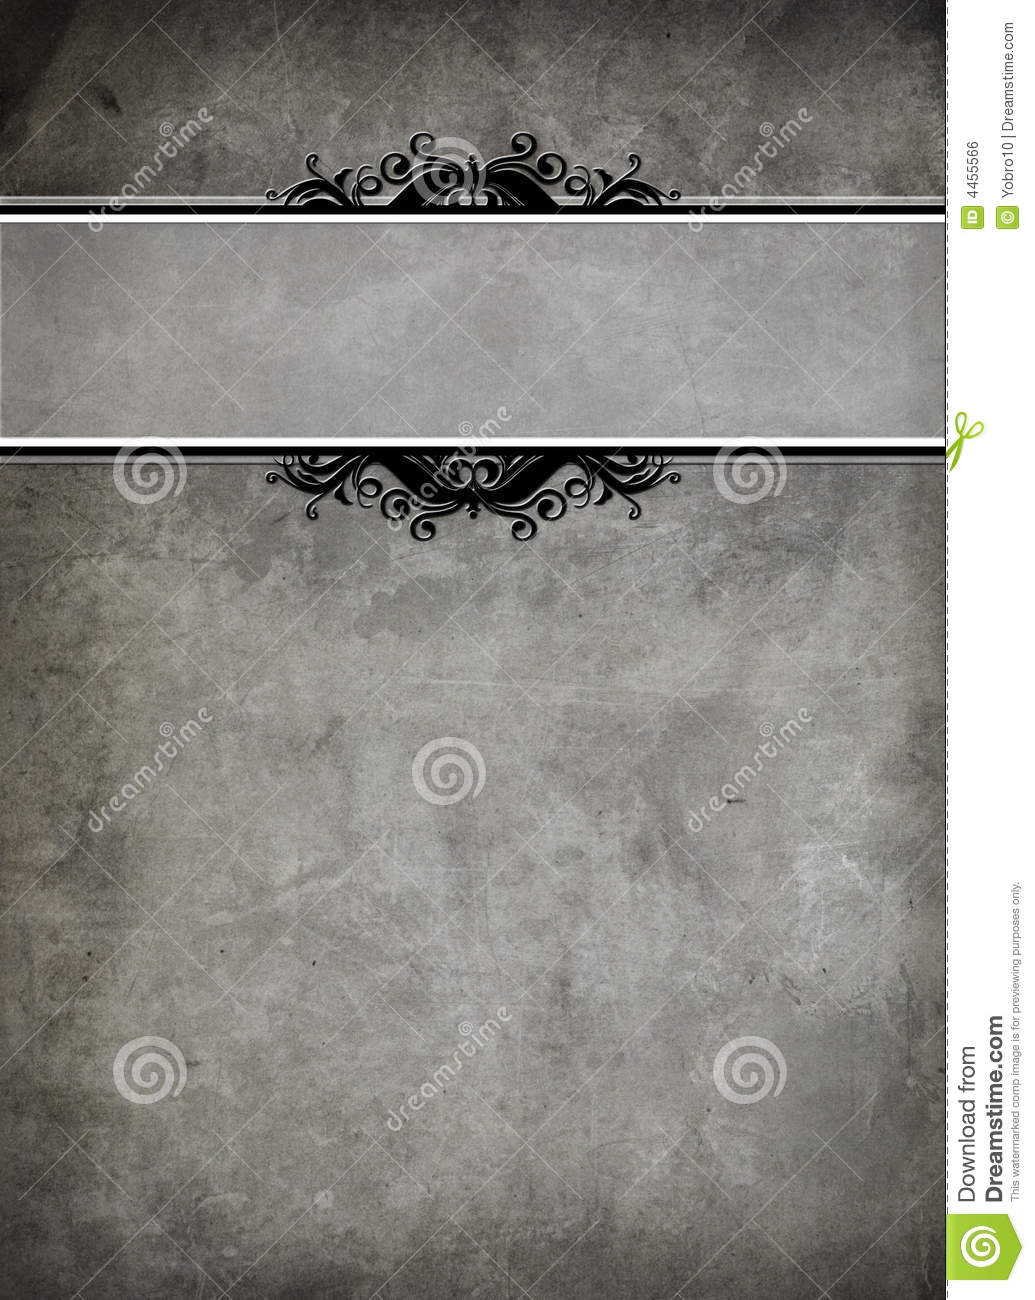 Book Cover With Pictures : Ancient book cover stock illustration of